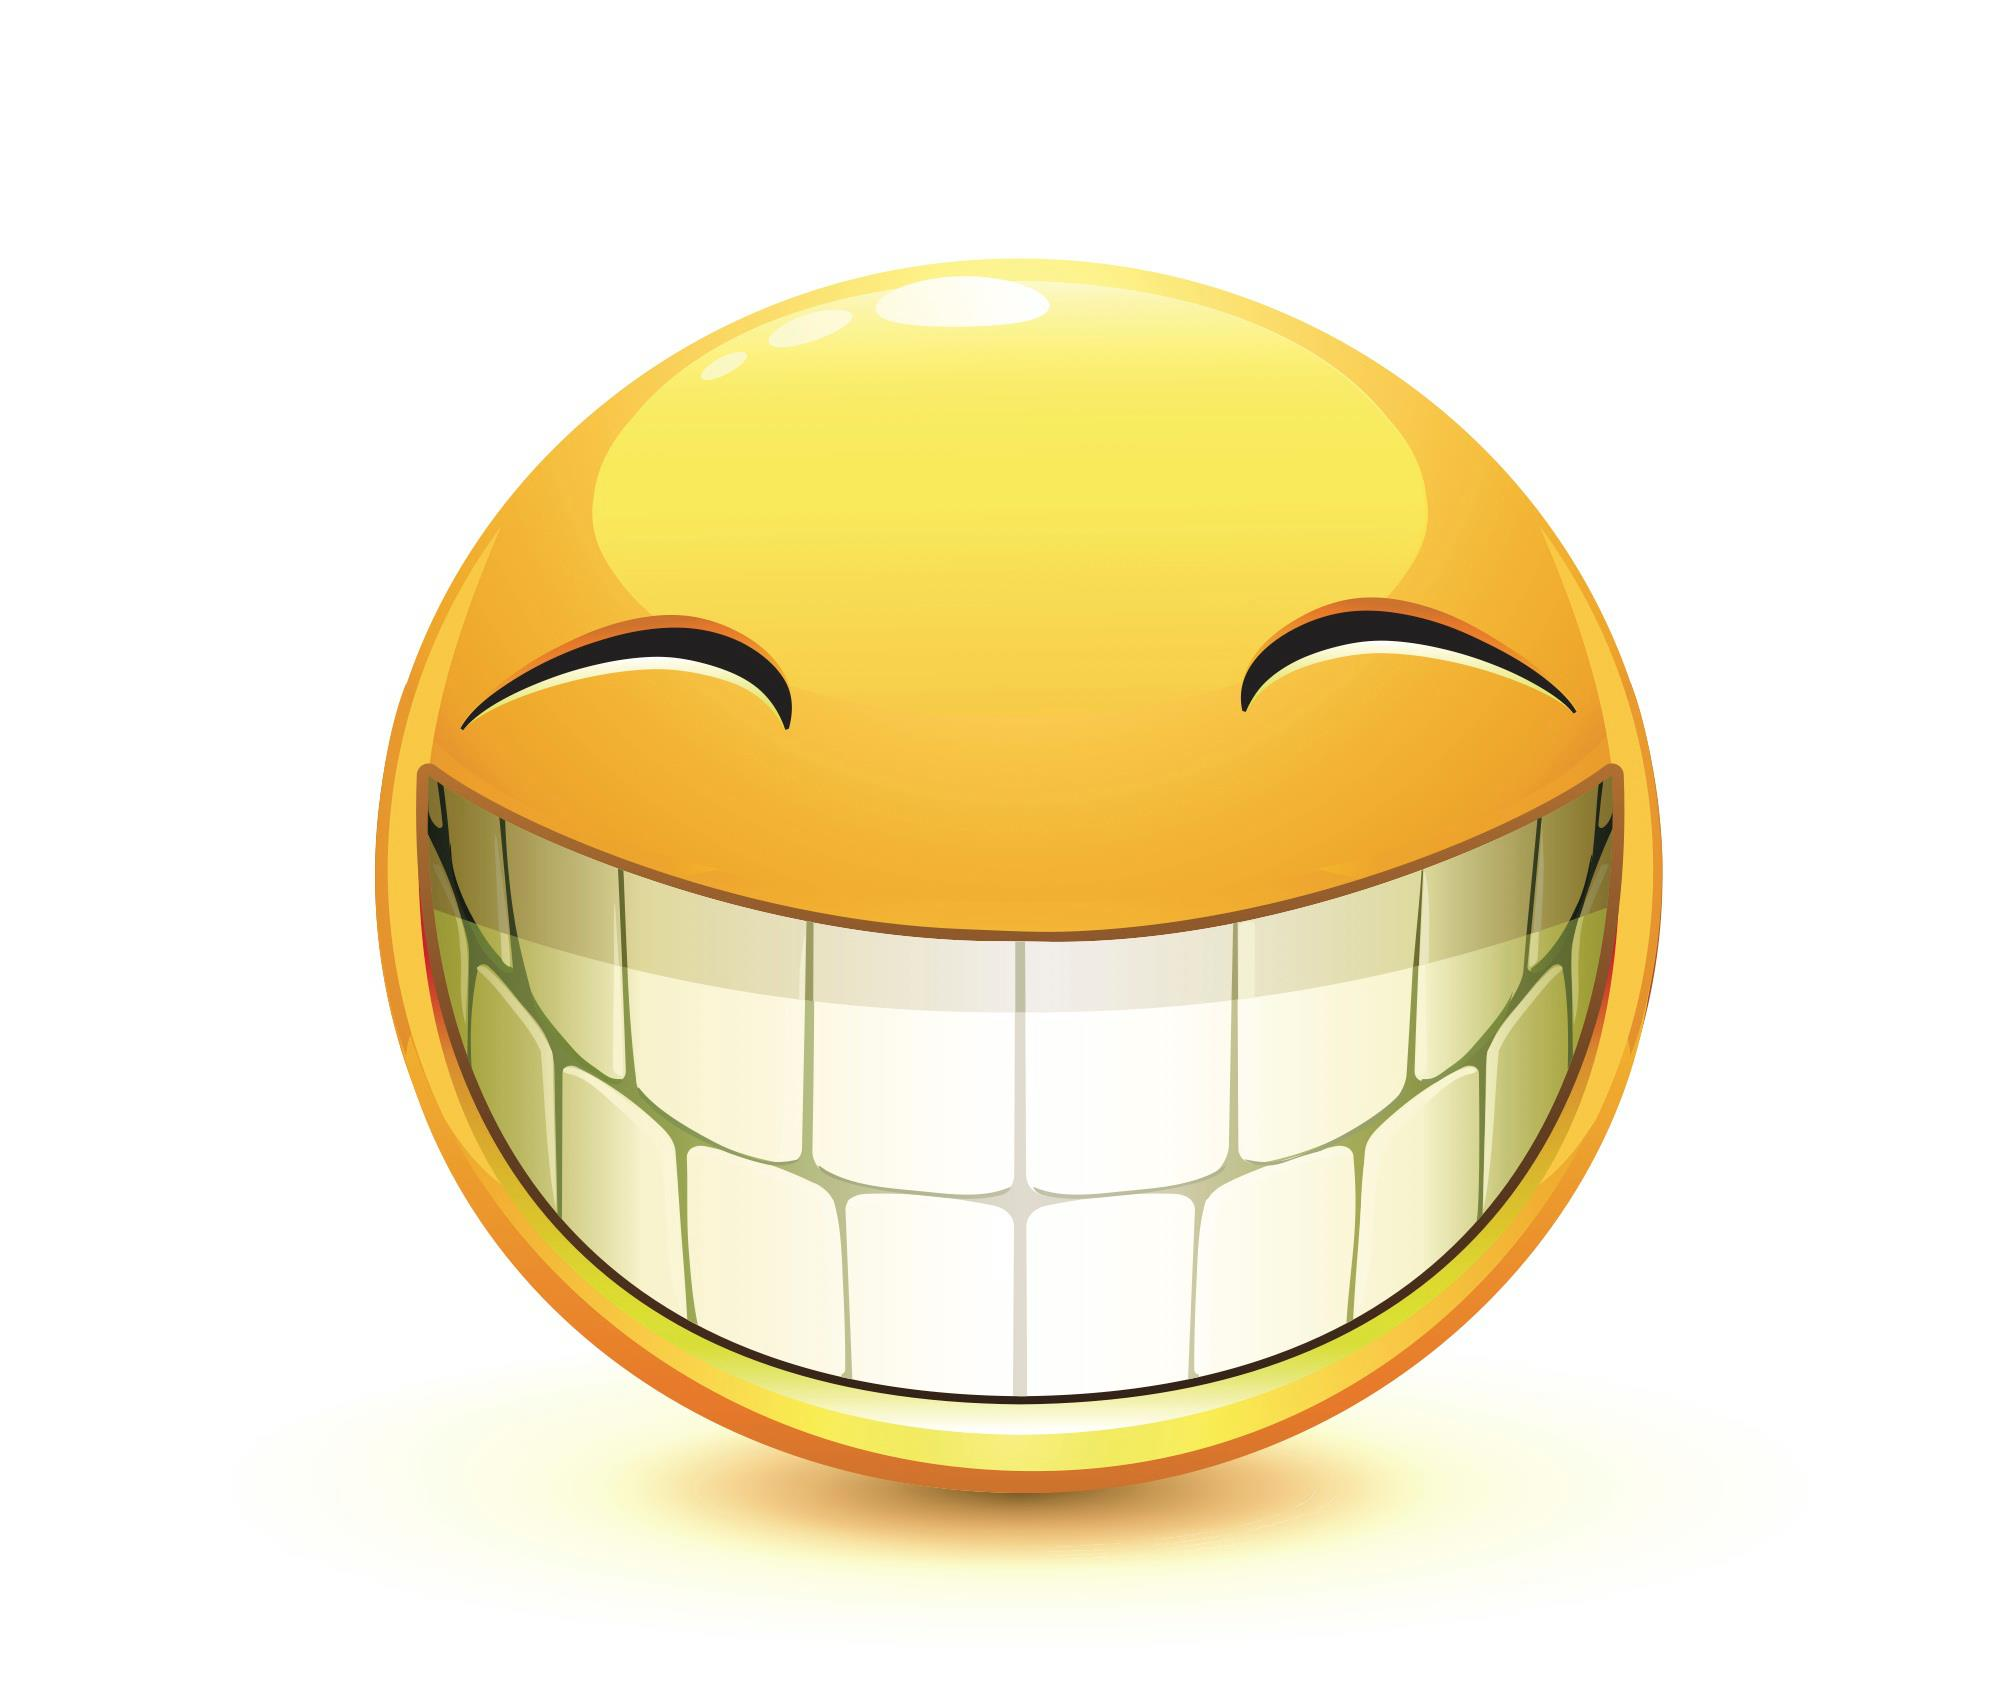 Emotions clipart big smile Search big Search Google smile